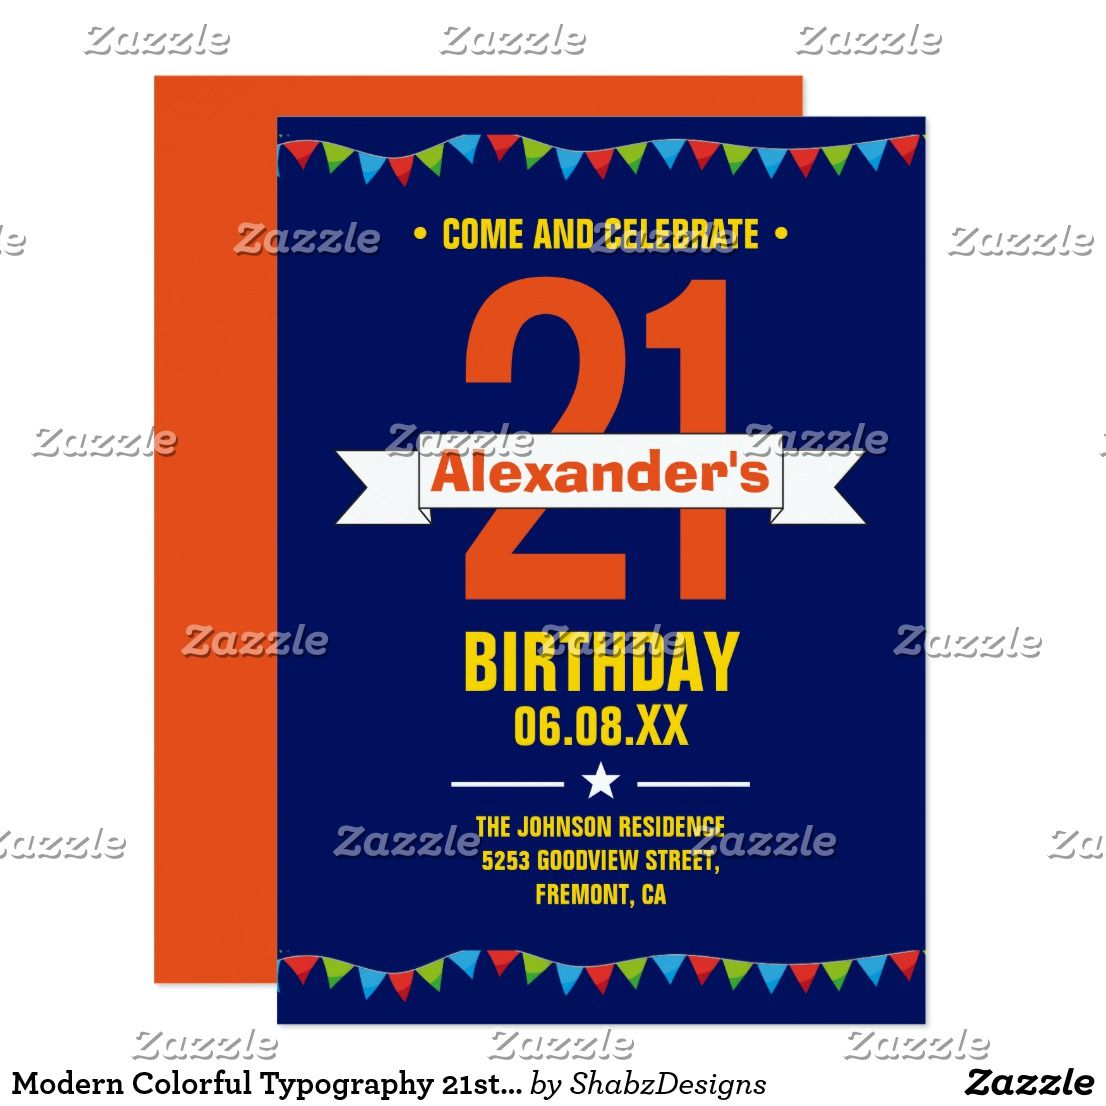 Modern Colorful Typography 21st Birthday Party Invitation ...